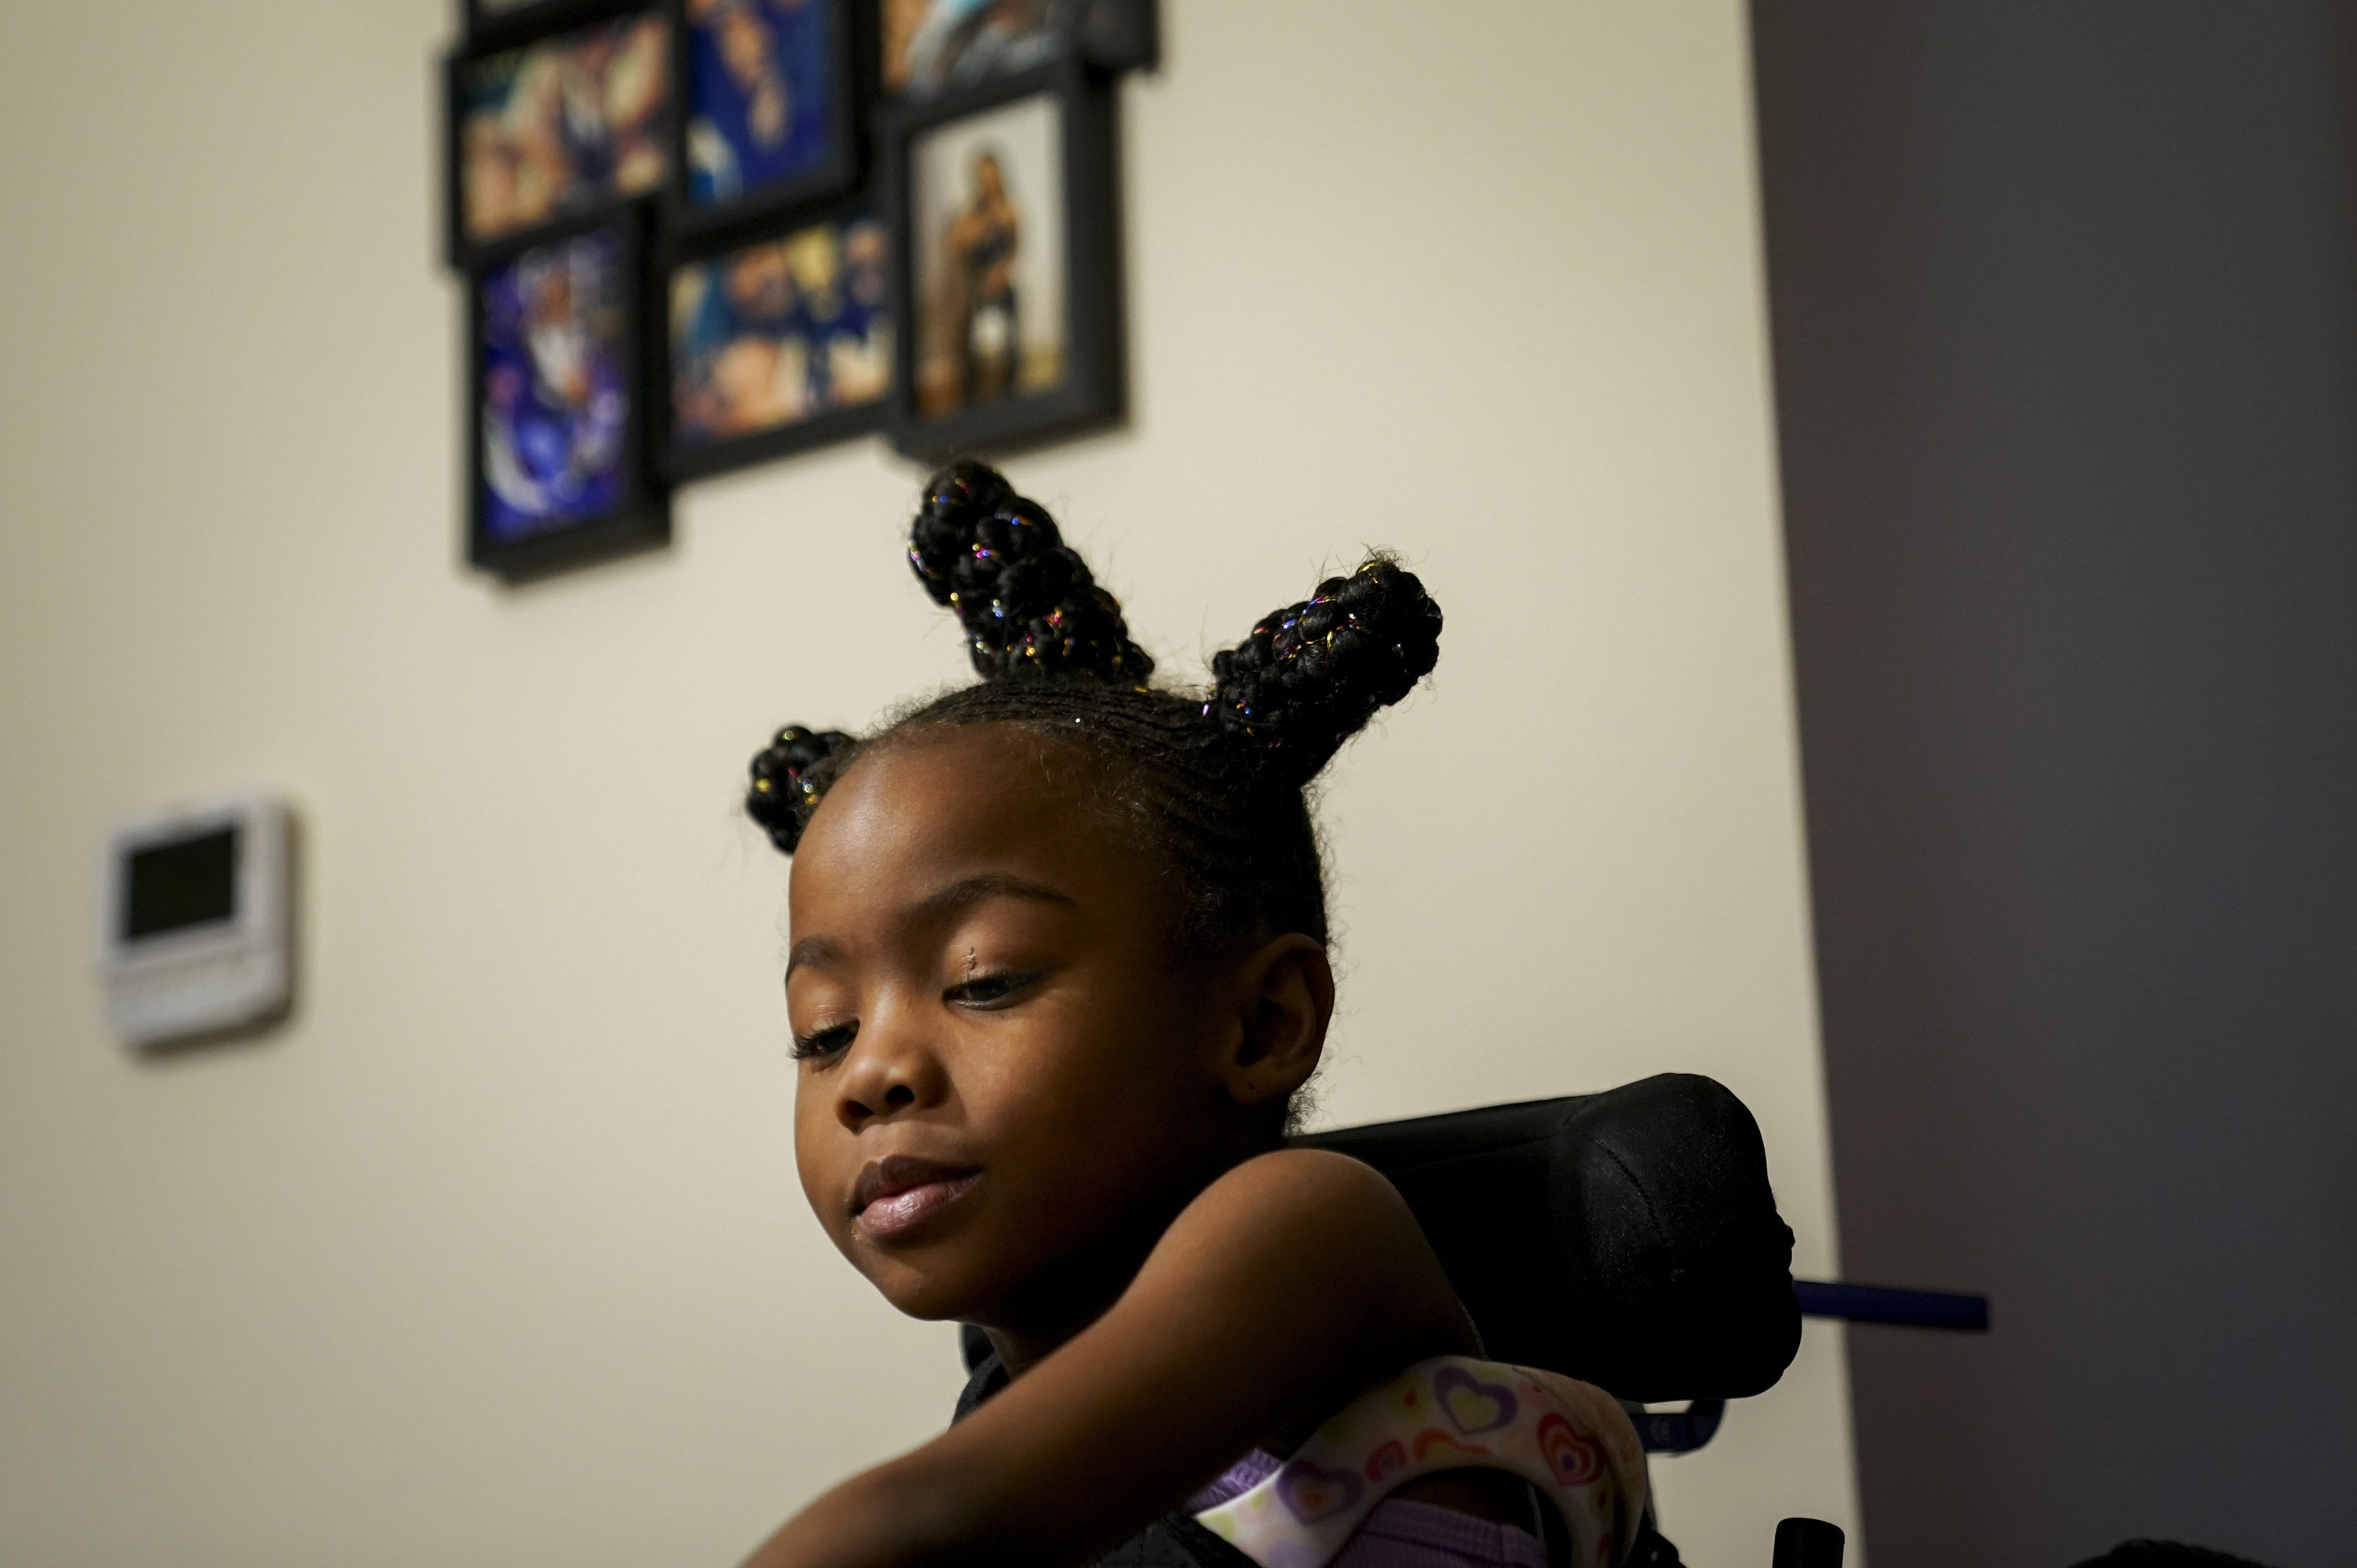 My'onna plays a game with her mother at their Washington apartment. MUST CREDIT: Washington Post photo by Jahi Chikwendiu